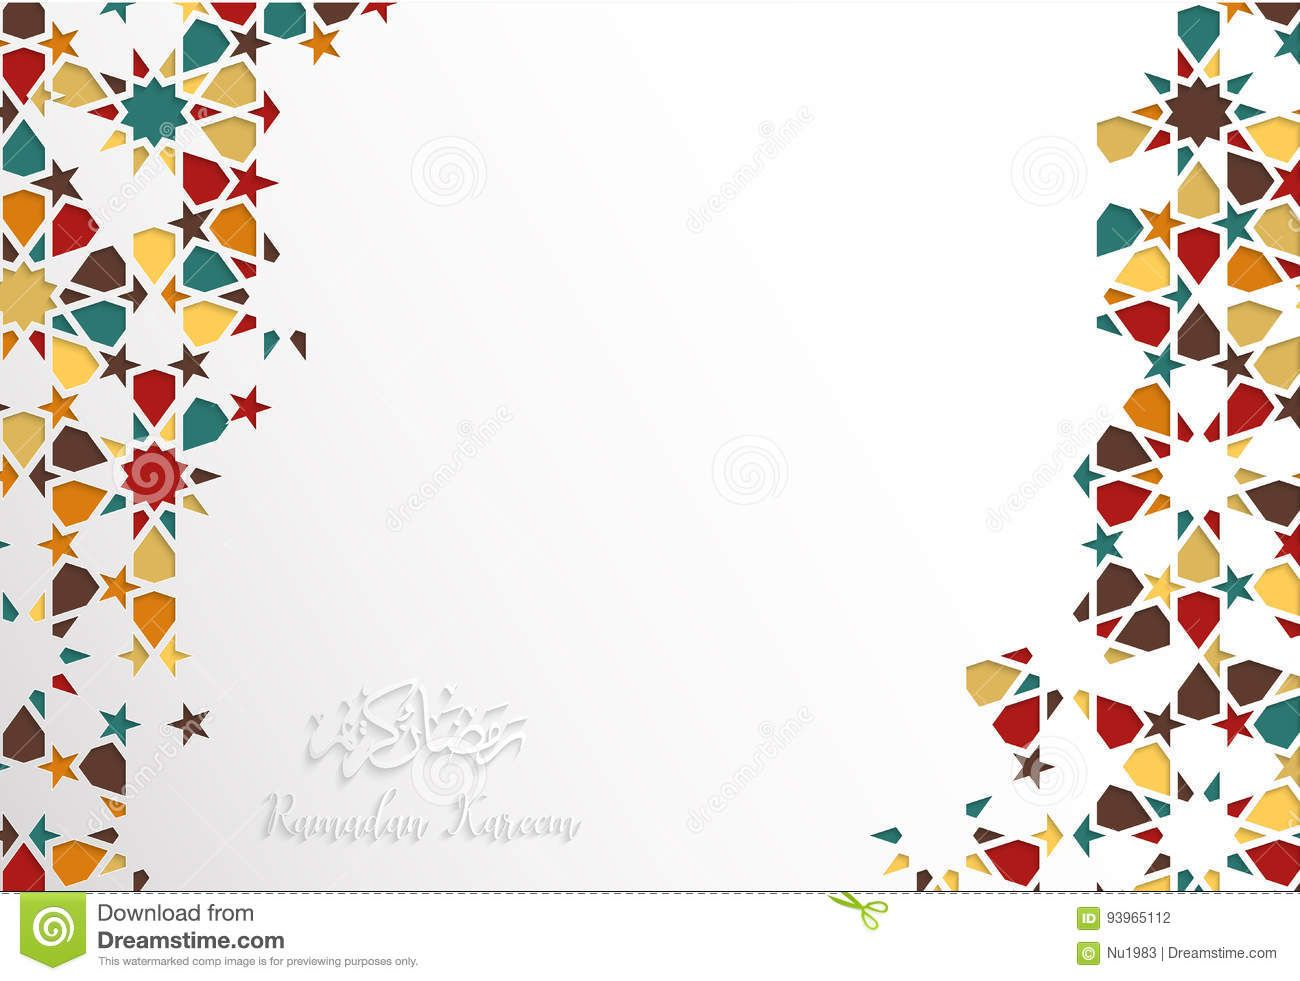 Islamic Design Greeting Card Template For Ramadan Kareem With Co